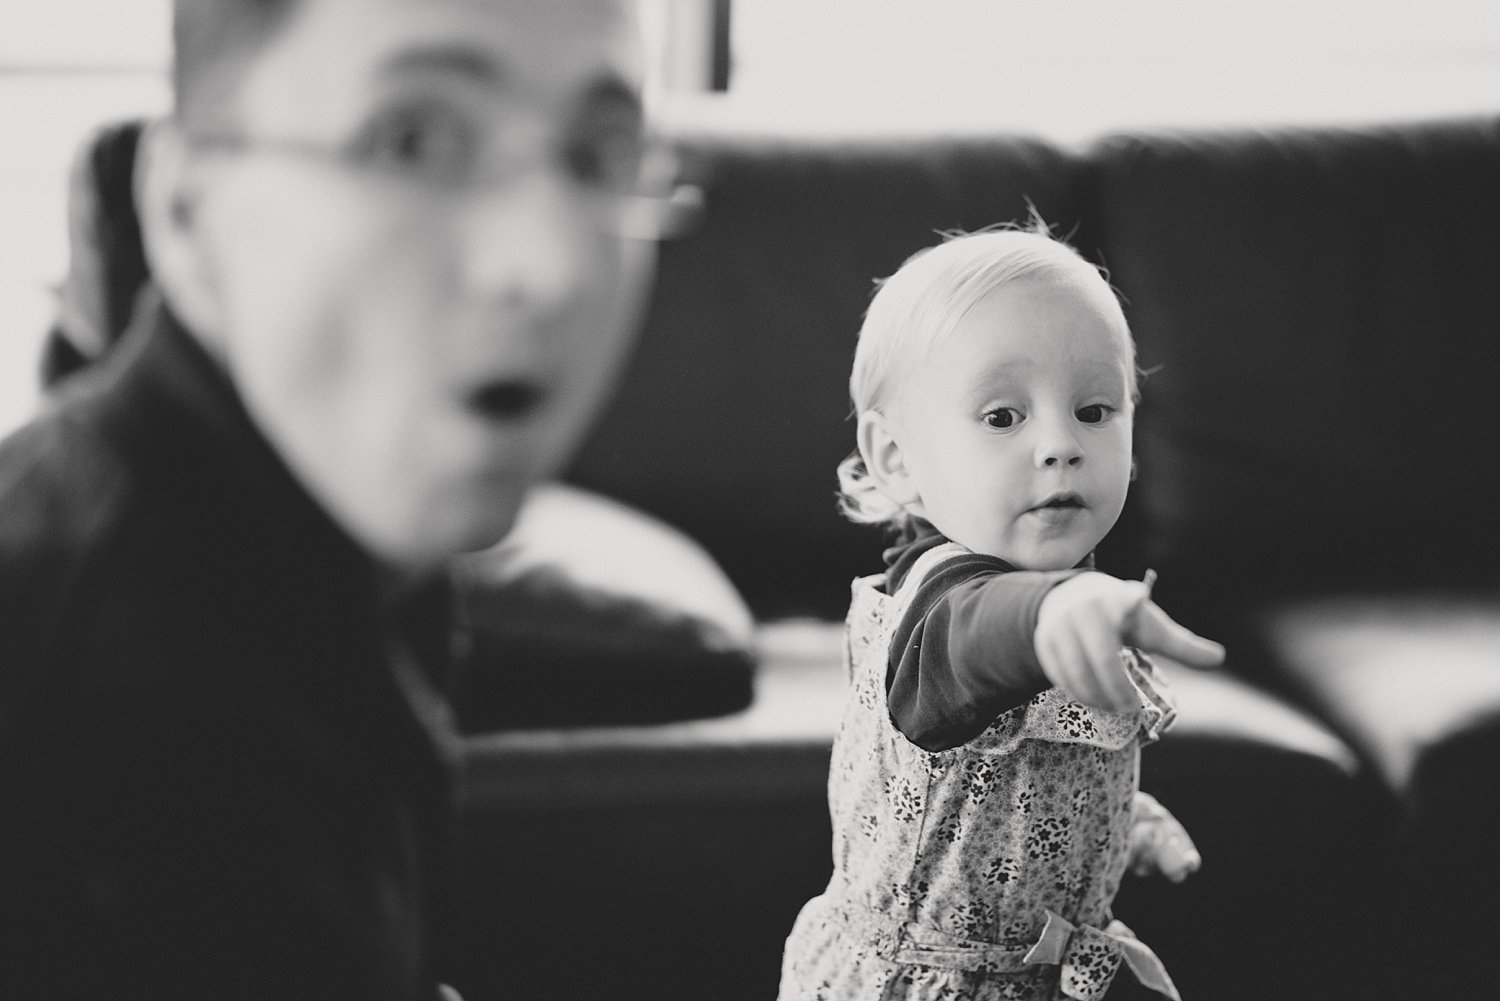 b/w candid of a child pointing - 5 Tips for Doing Lifestyle Photo Sessions